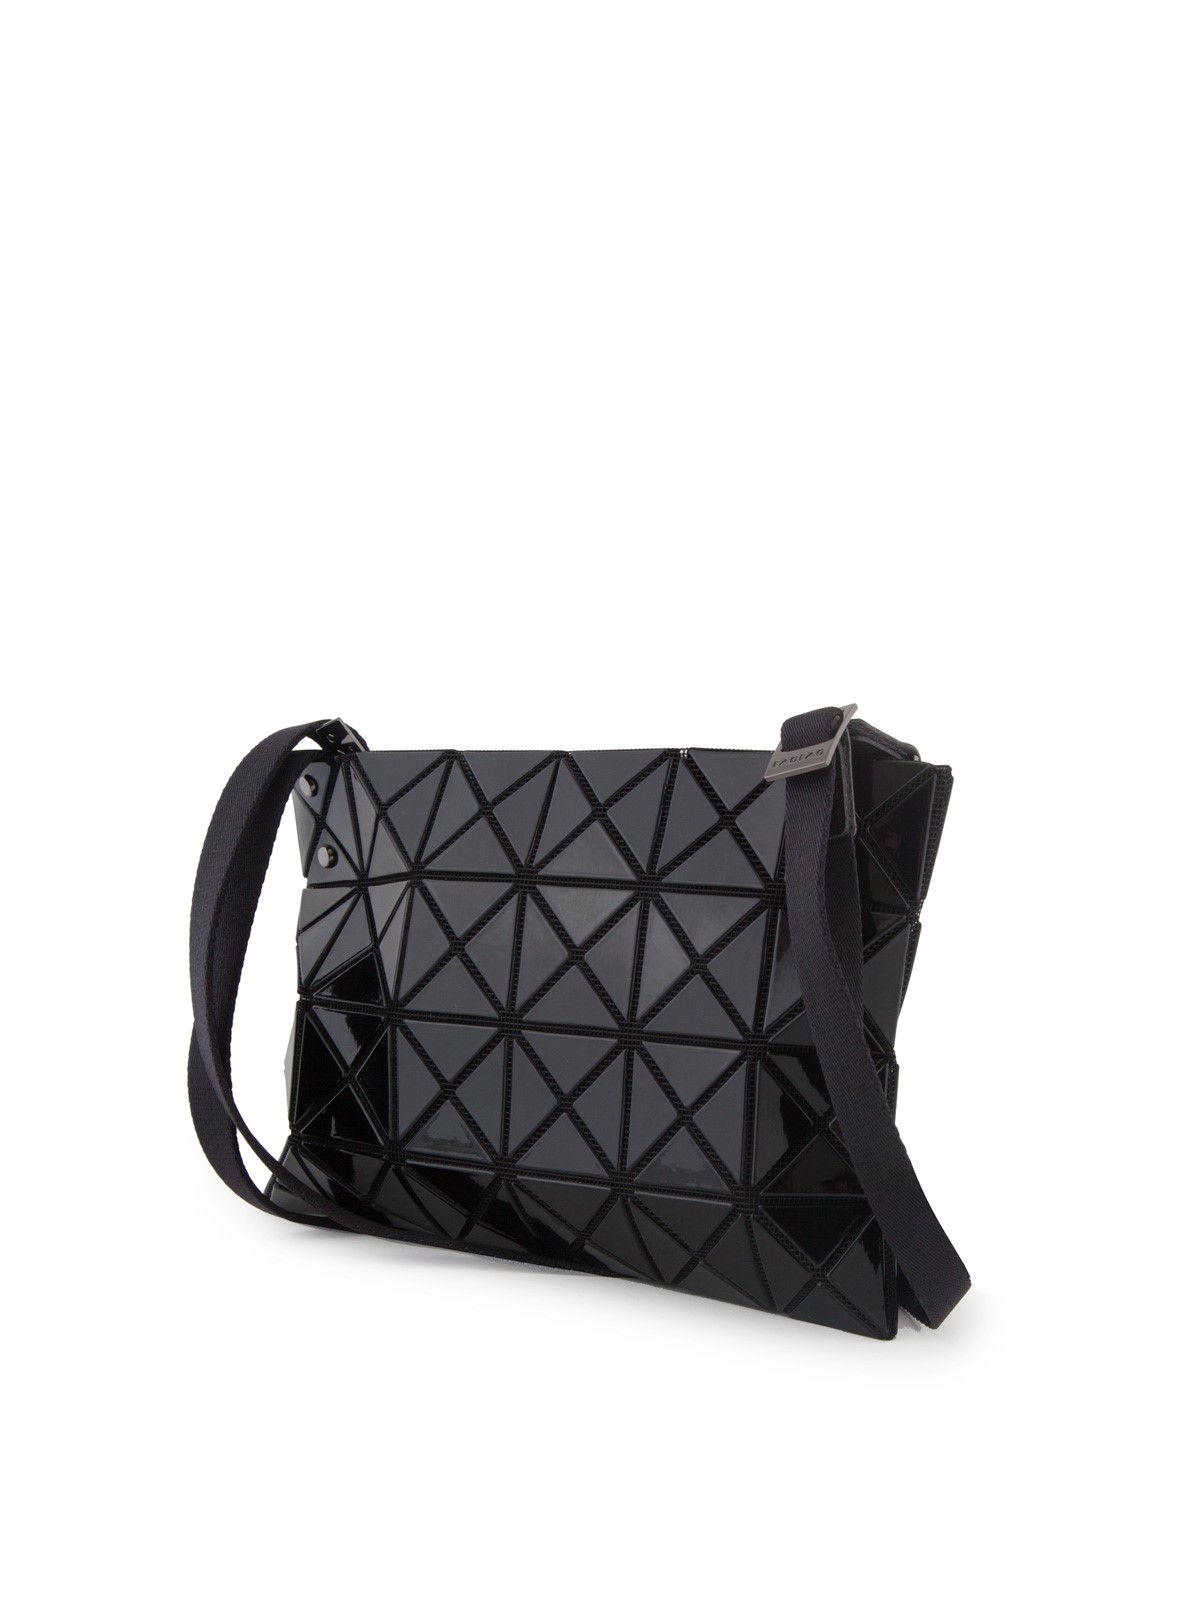 71c0c8f60e bao bao issey miyake SHOULDER PRISM BAG available on montiboutique ...